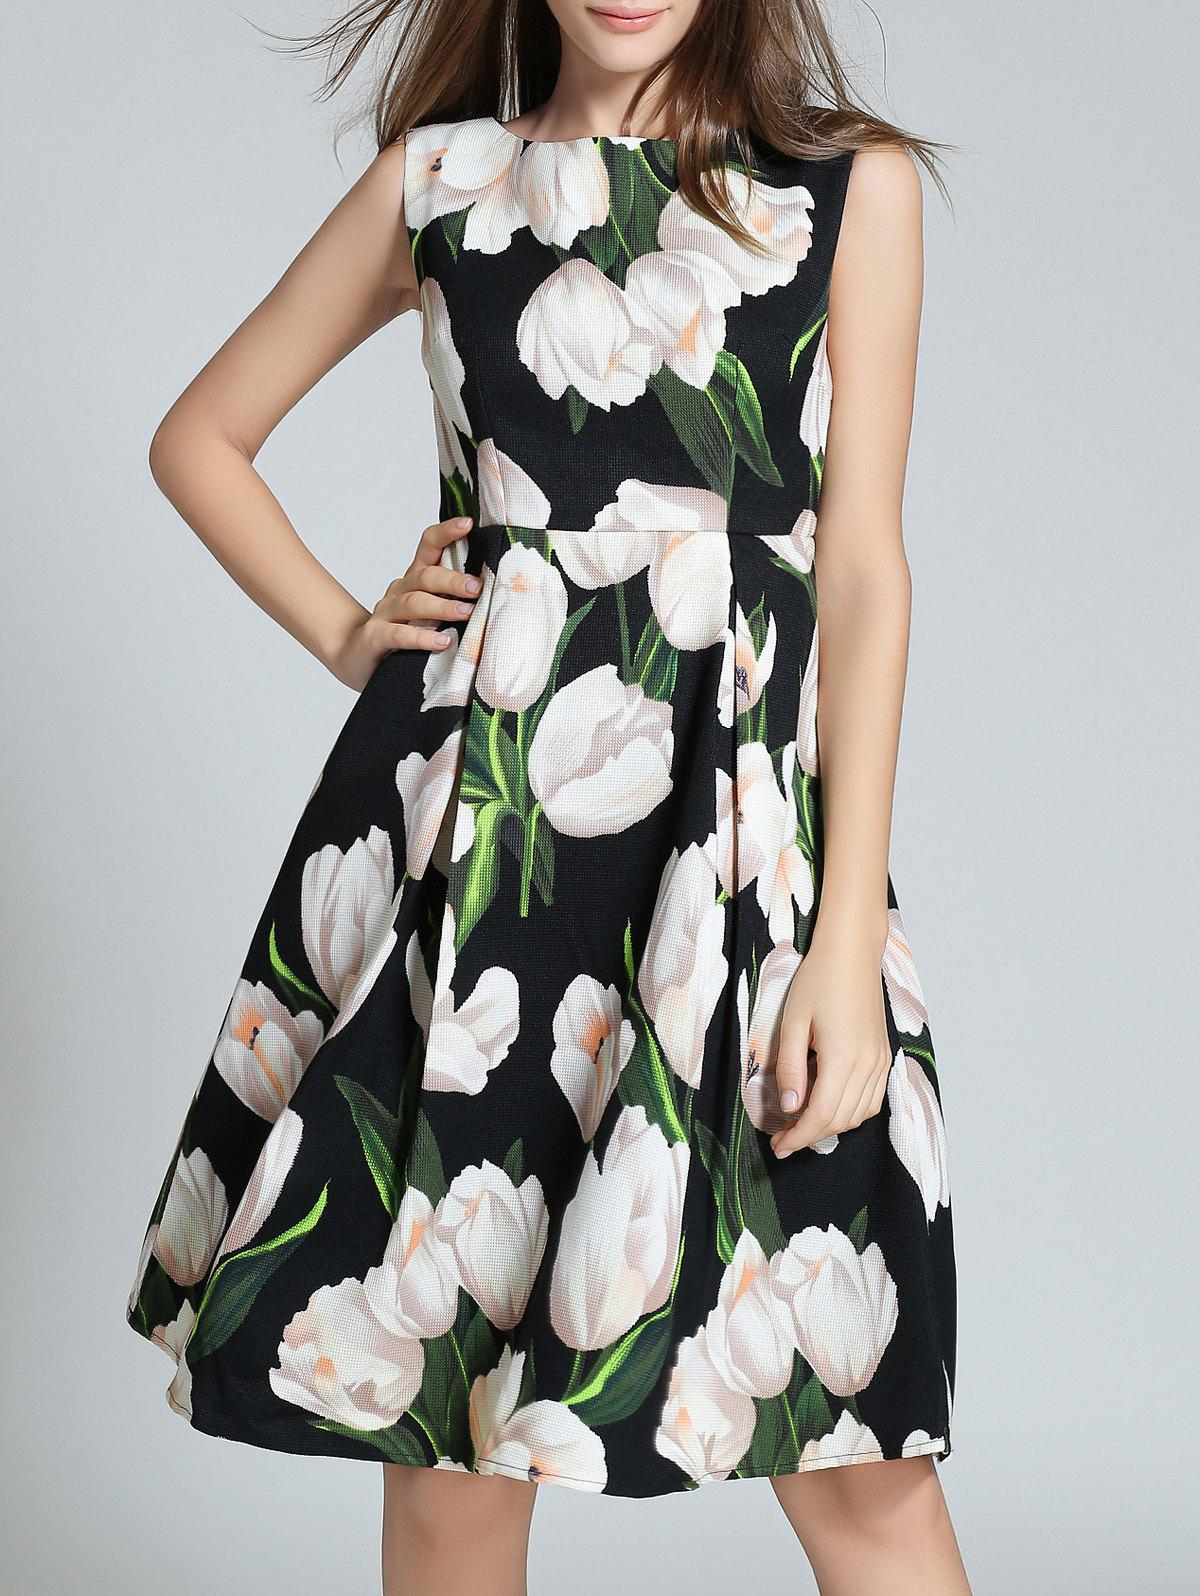 Sleeveless Pocket Design Floral Print Dress - BLACK 2XL